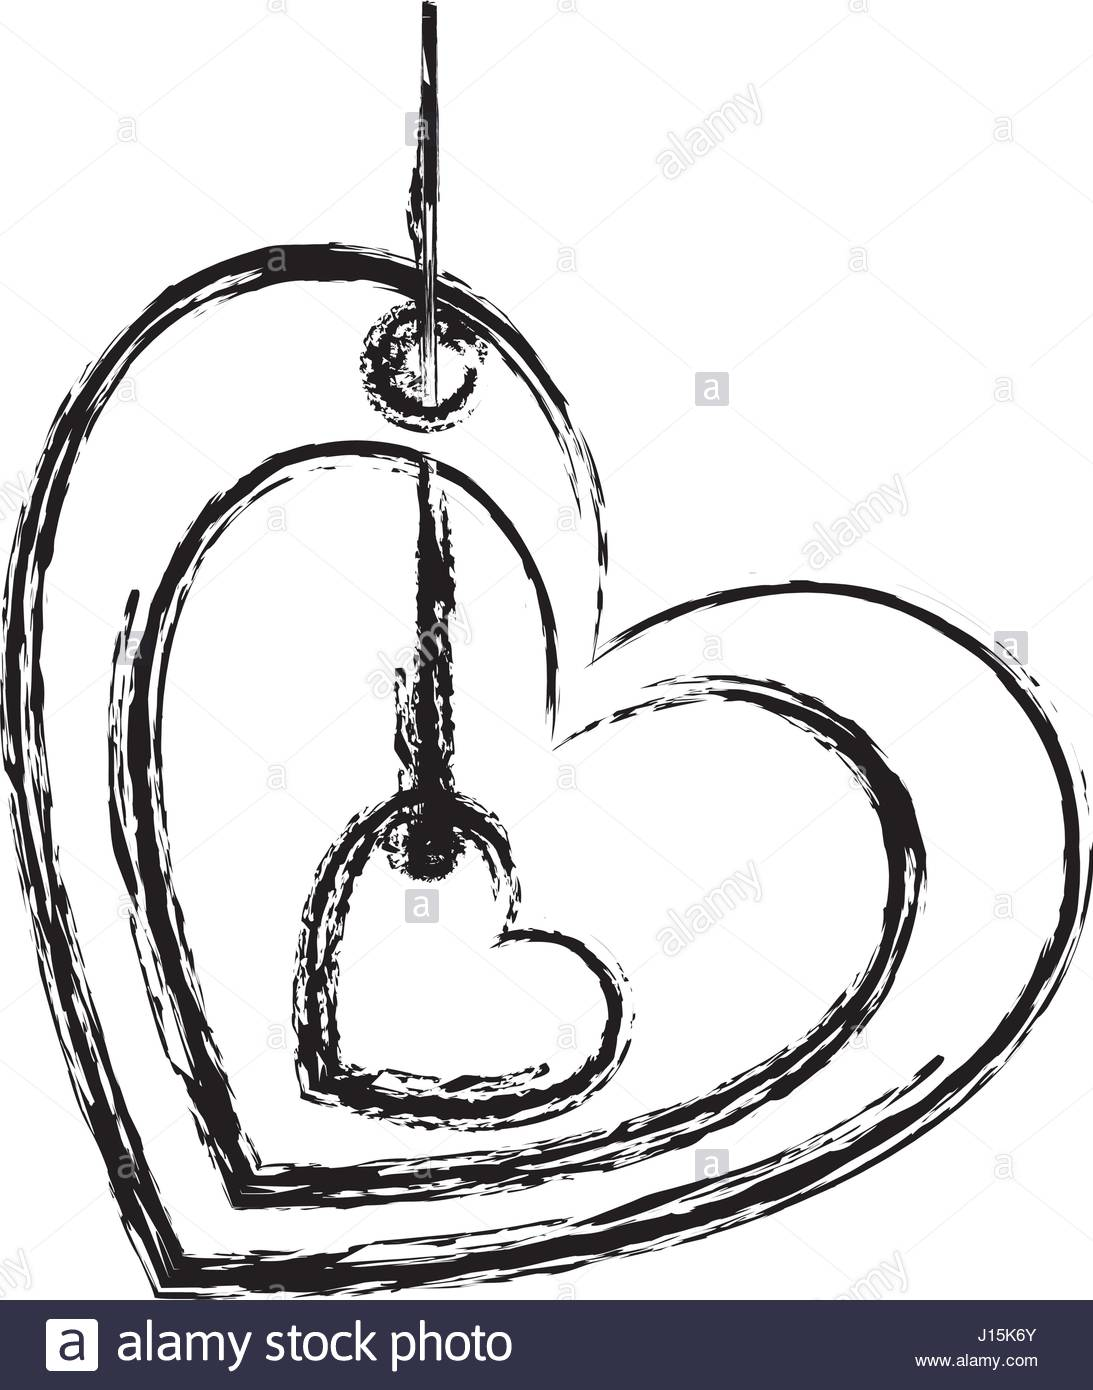 1093x1390 Blurred Sketch Silhouette Love Heart Figure Hanging For Decoration